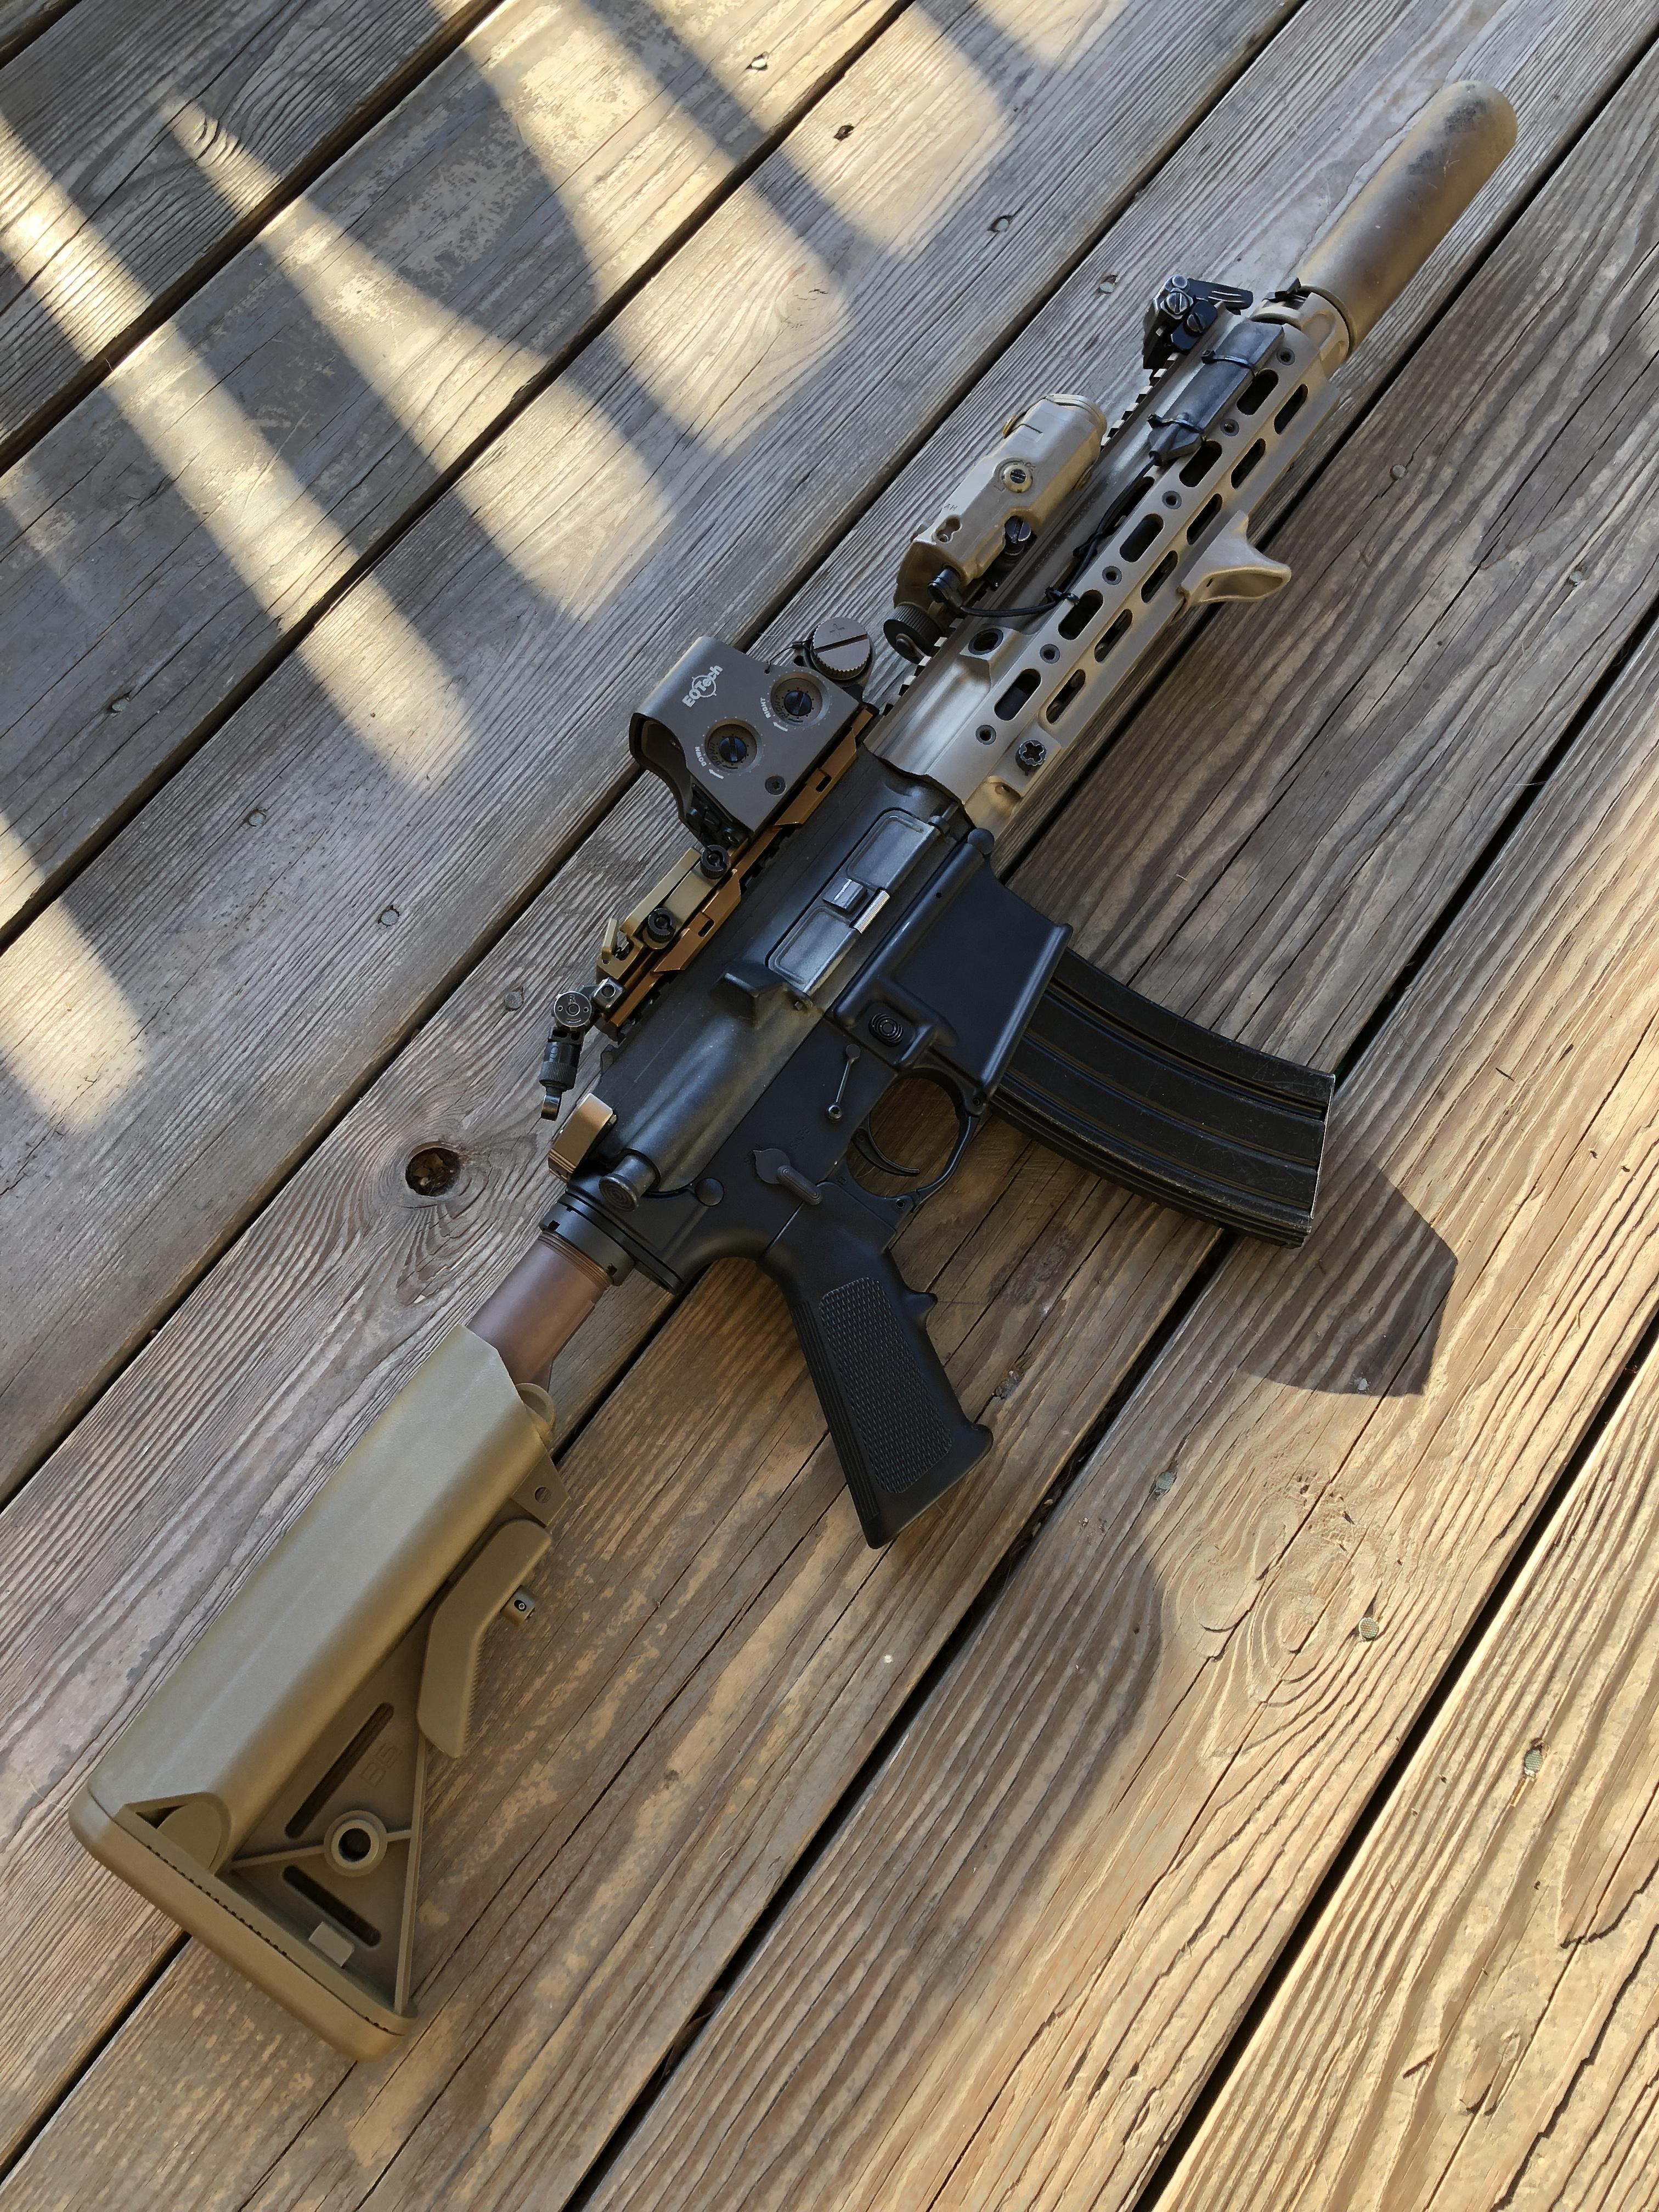 HK416 Owners Picture Thread (genuine HK416's only please)-990fc6a7-172f-4fc5-8d0f-aeb4f99218b5_1538710948923.jpeg